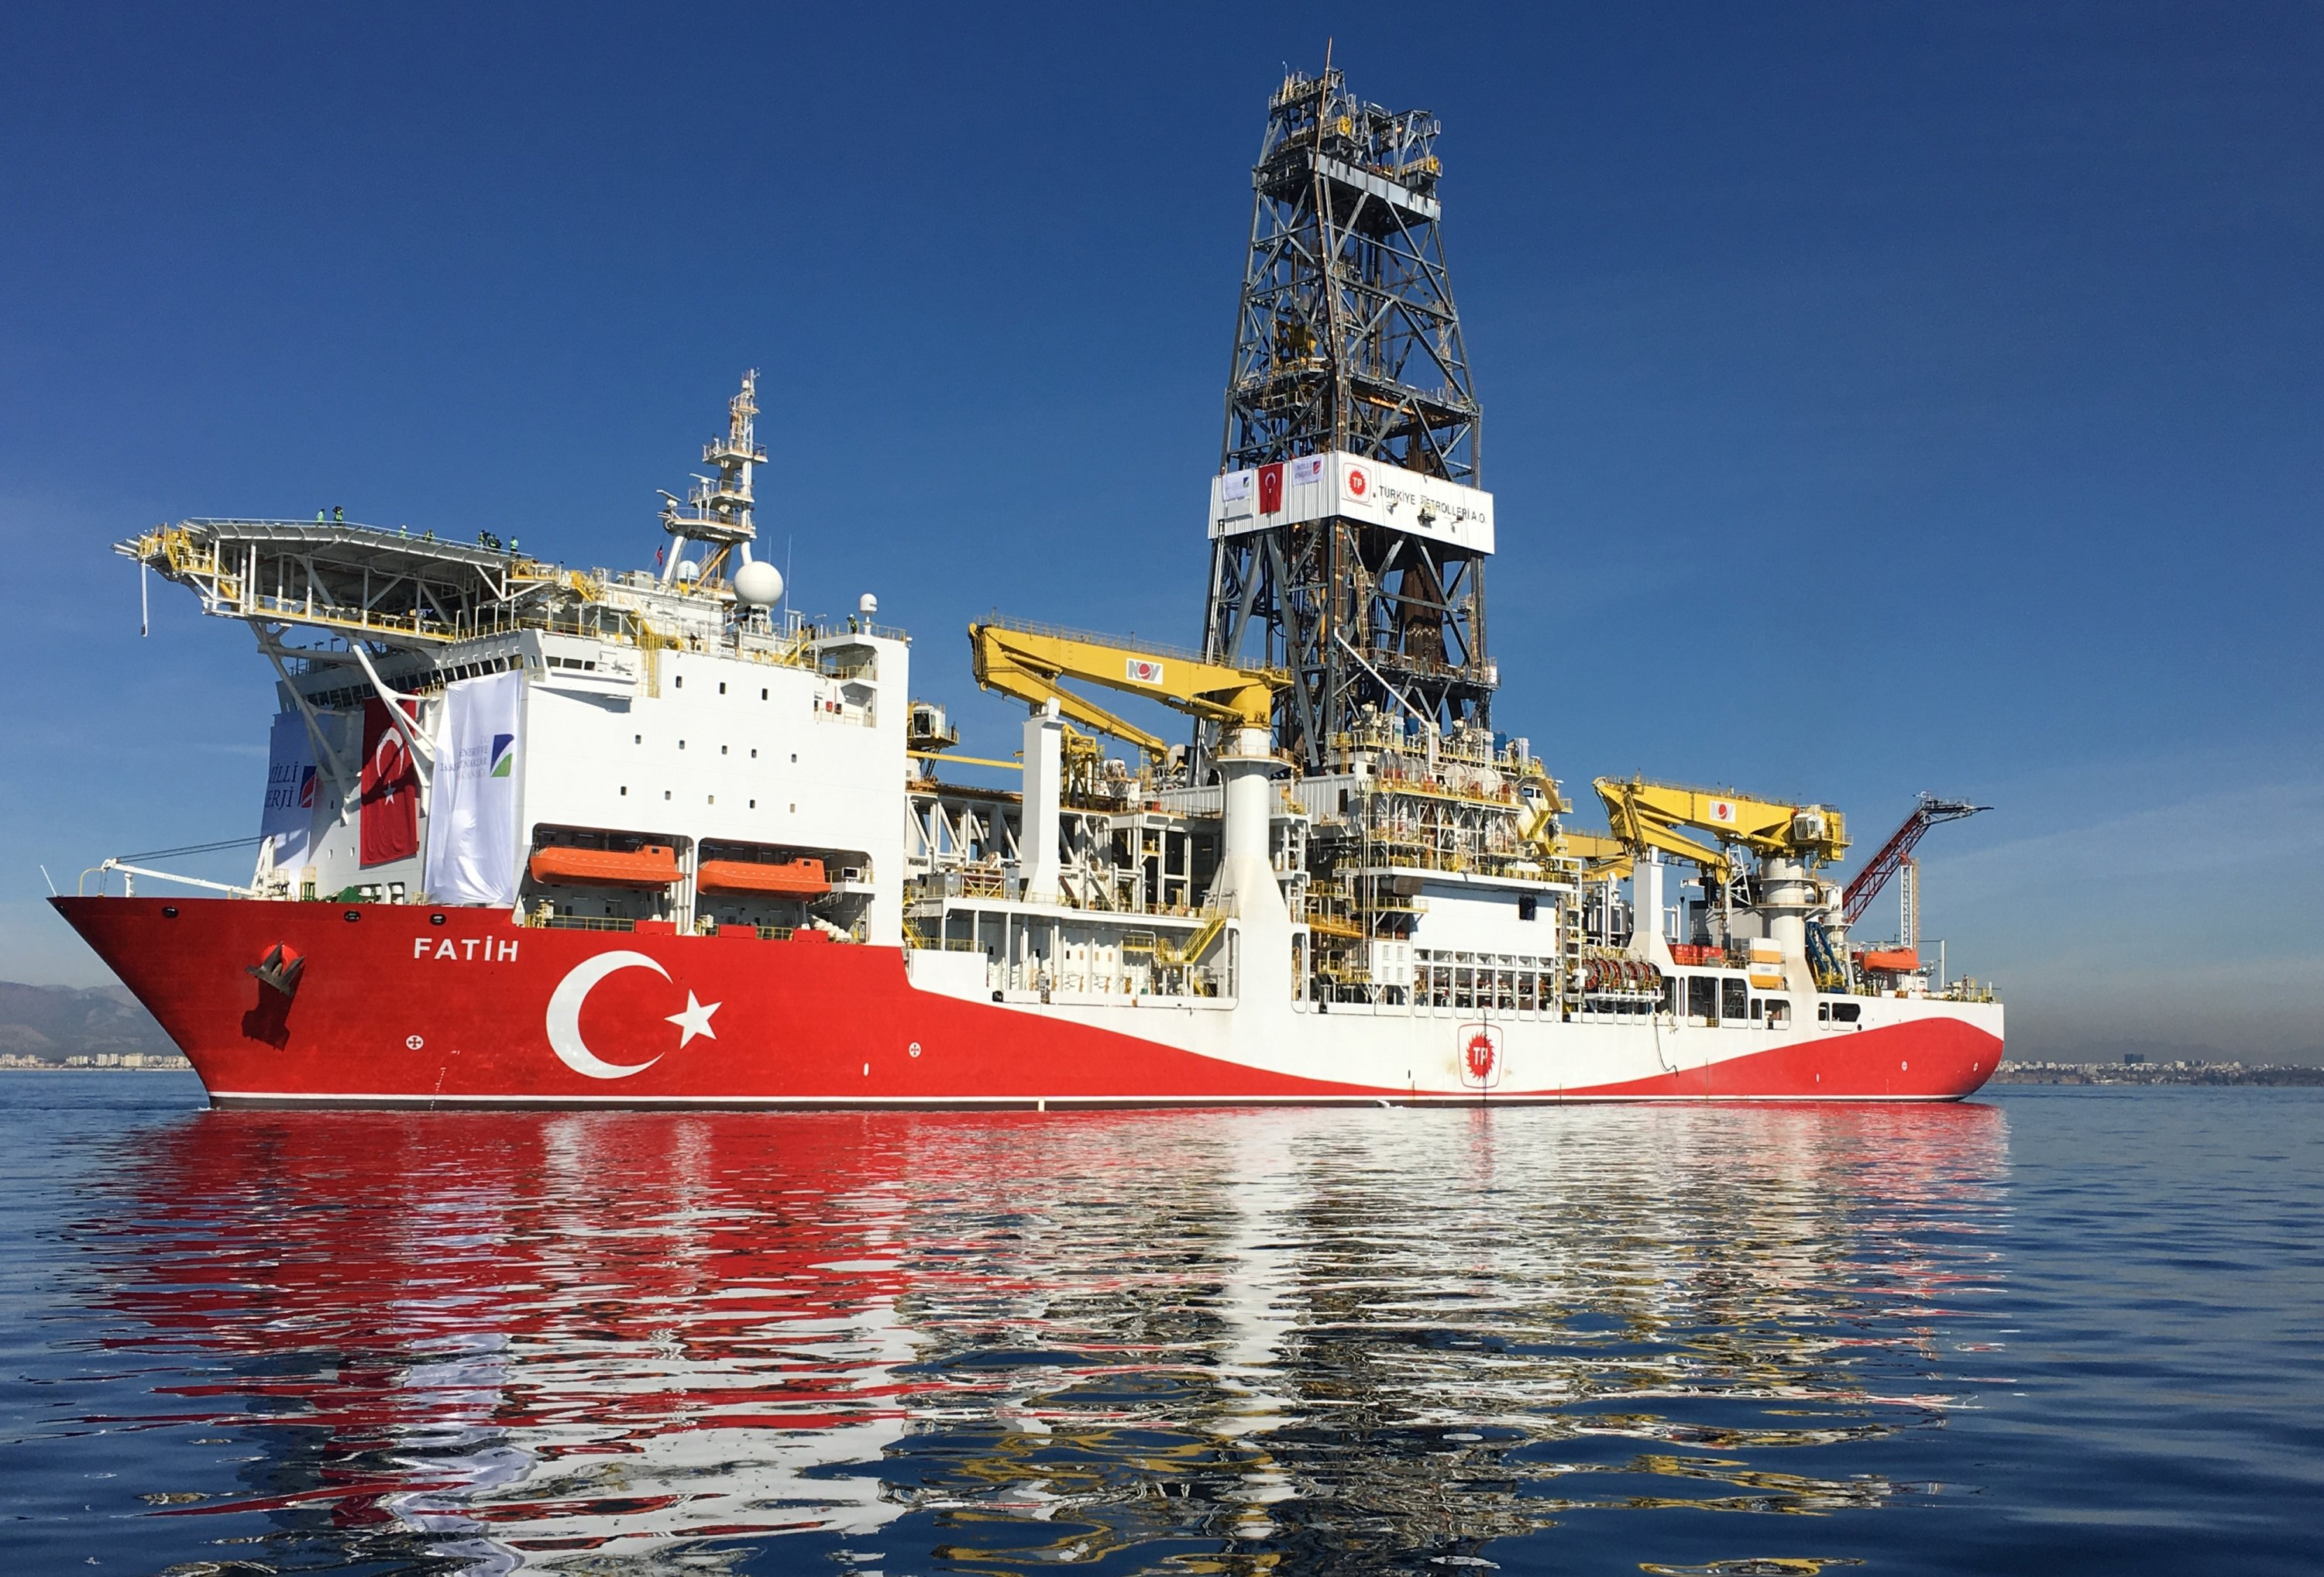 The Fatih oil drilling ship prepares to sail to the contested waters of the Mediterranean Sea for oil and gas drilling operations near Anatalya, Turkey, Oct. 30, 2018. (Photo by Getty Images)